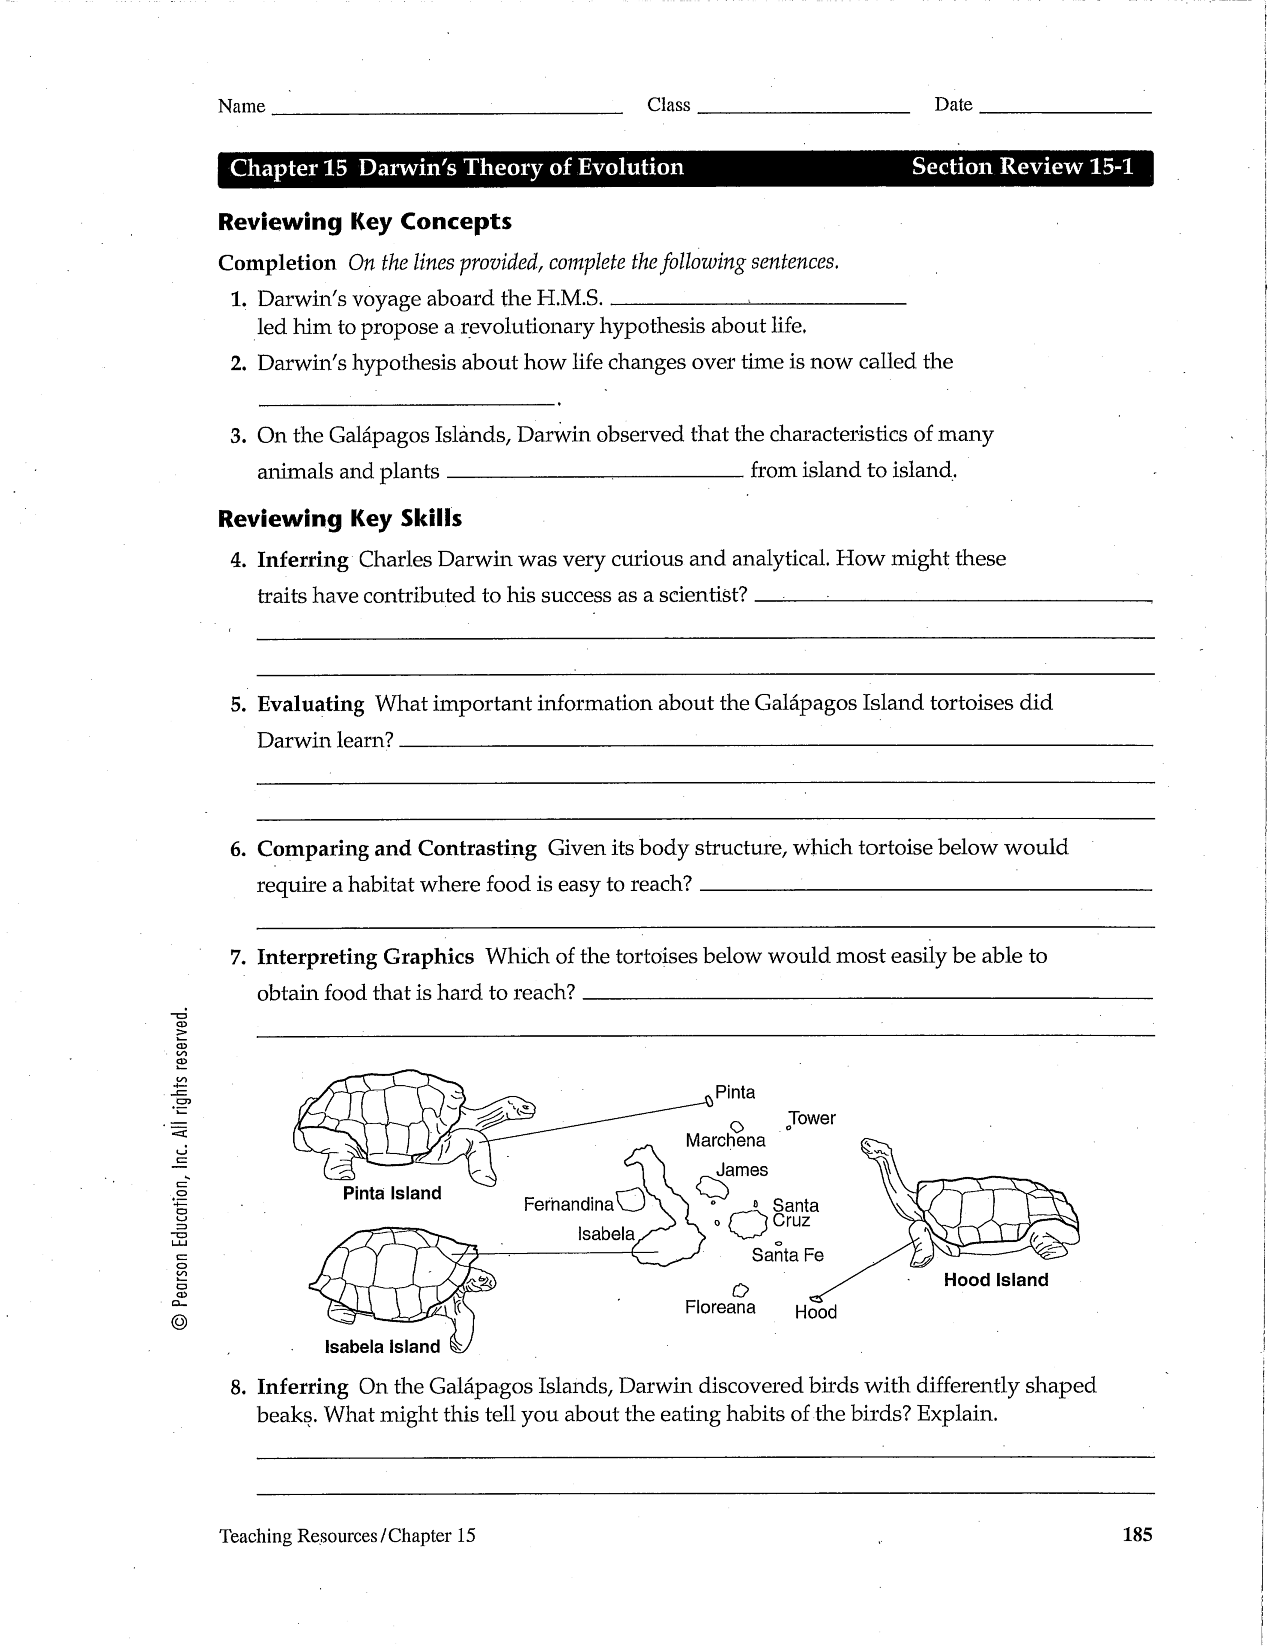 Darwin S Theory Of Evolution Worksheet Chapter 15 Darwin S Theory Of Evolution Reviewing Key Concepts Clases De Ciencias Biologia Ciencia